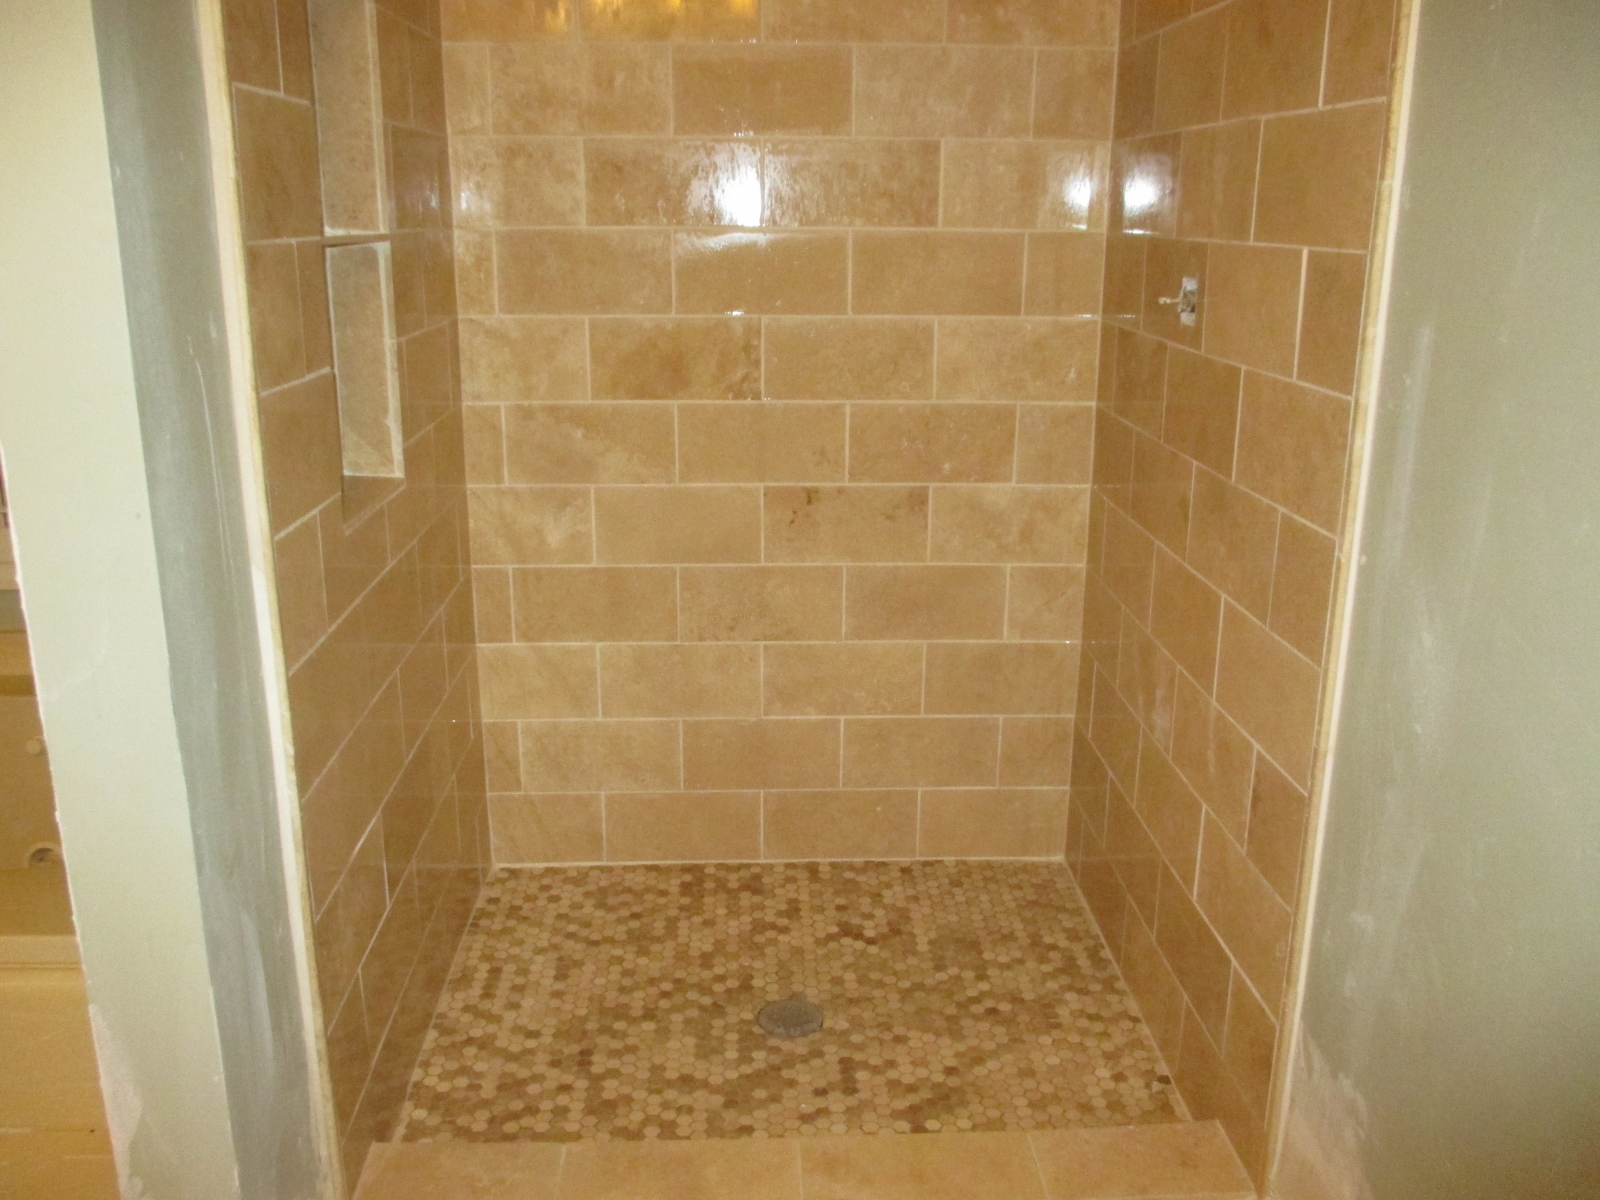 Tile Installation - Adanco Services